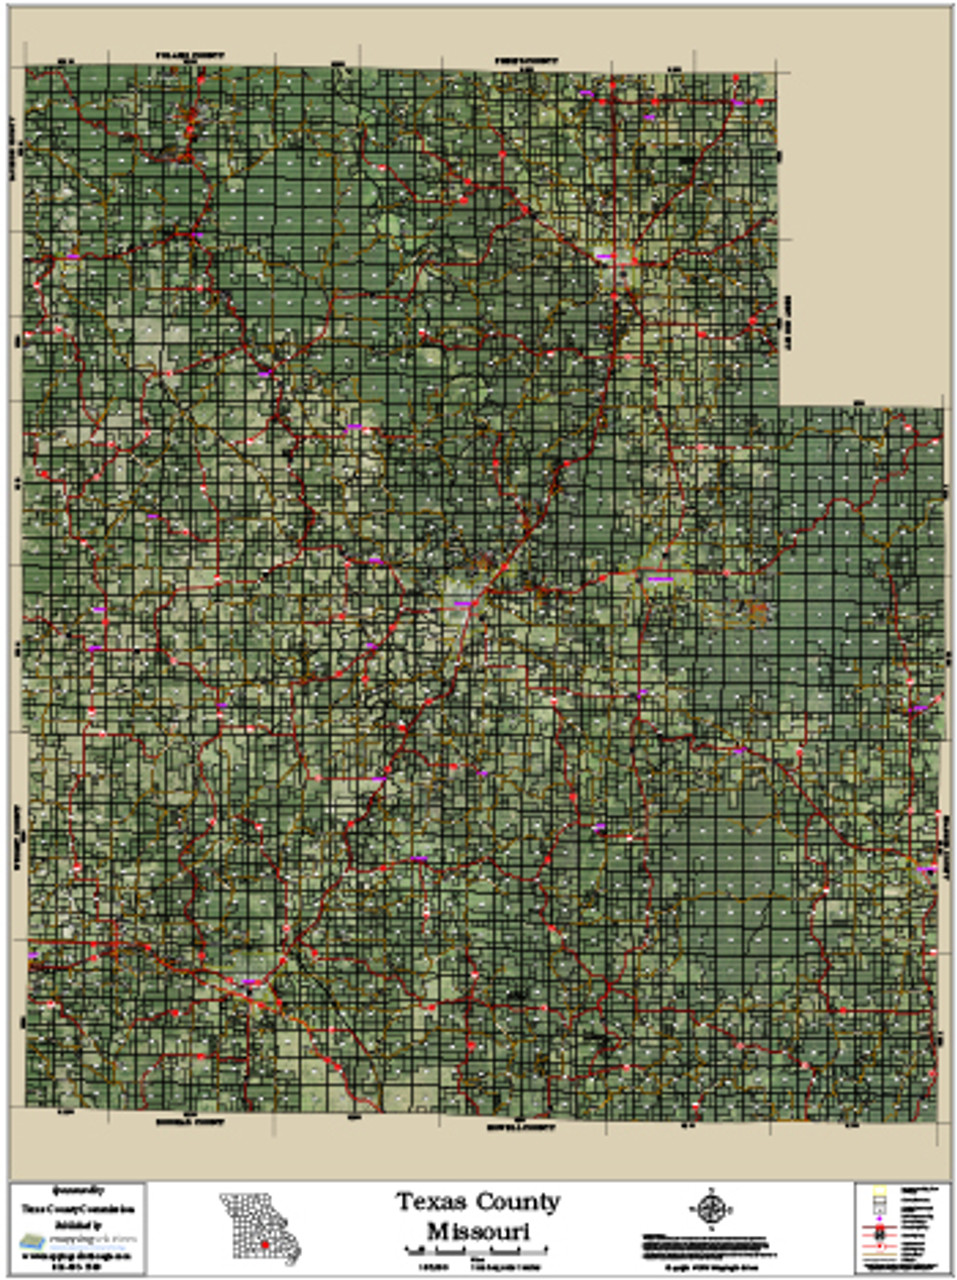 Map Of Texas County Lines.Texas County Missouri 2016 Aerial Map